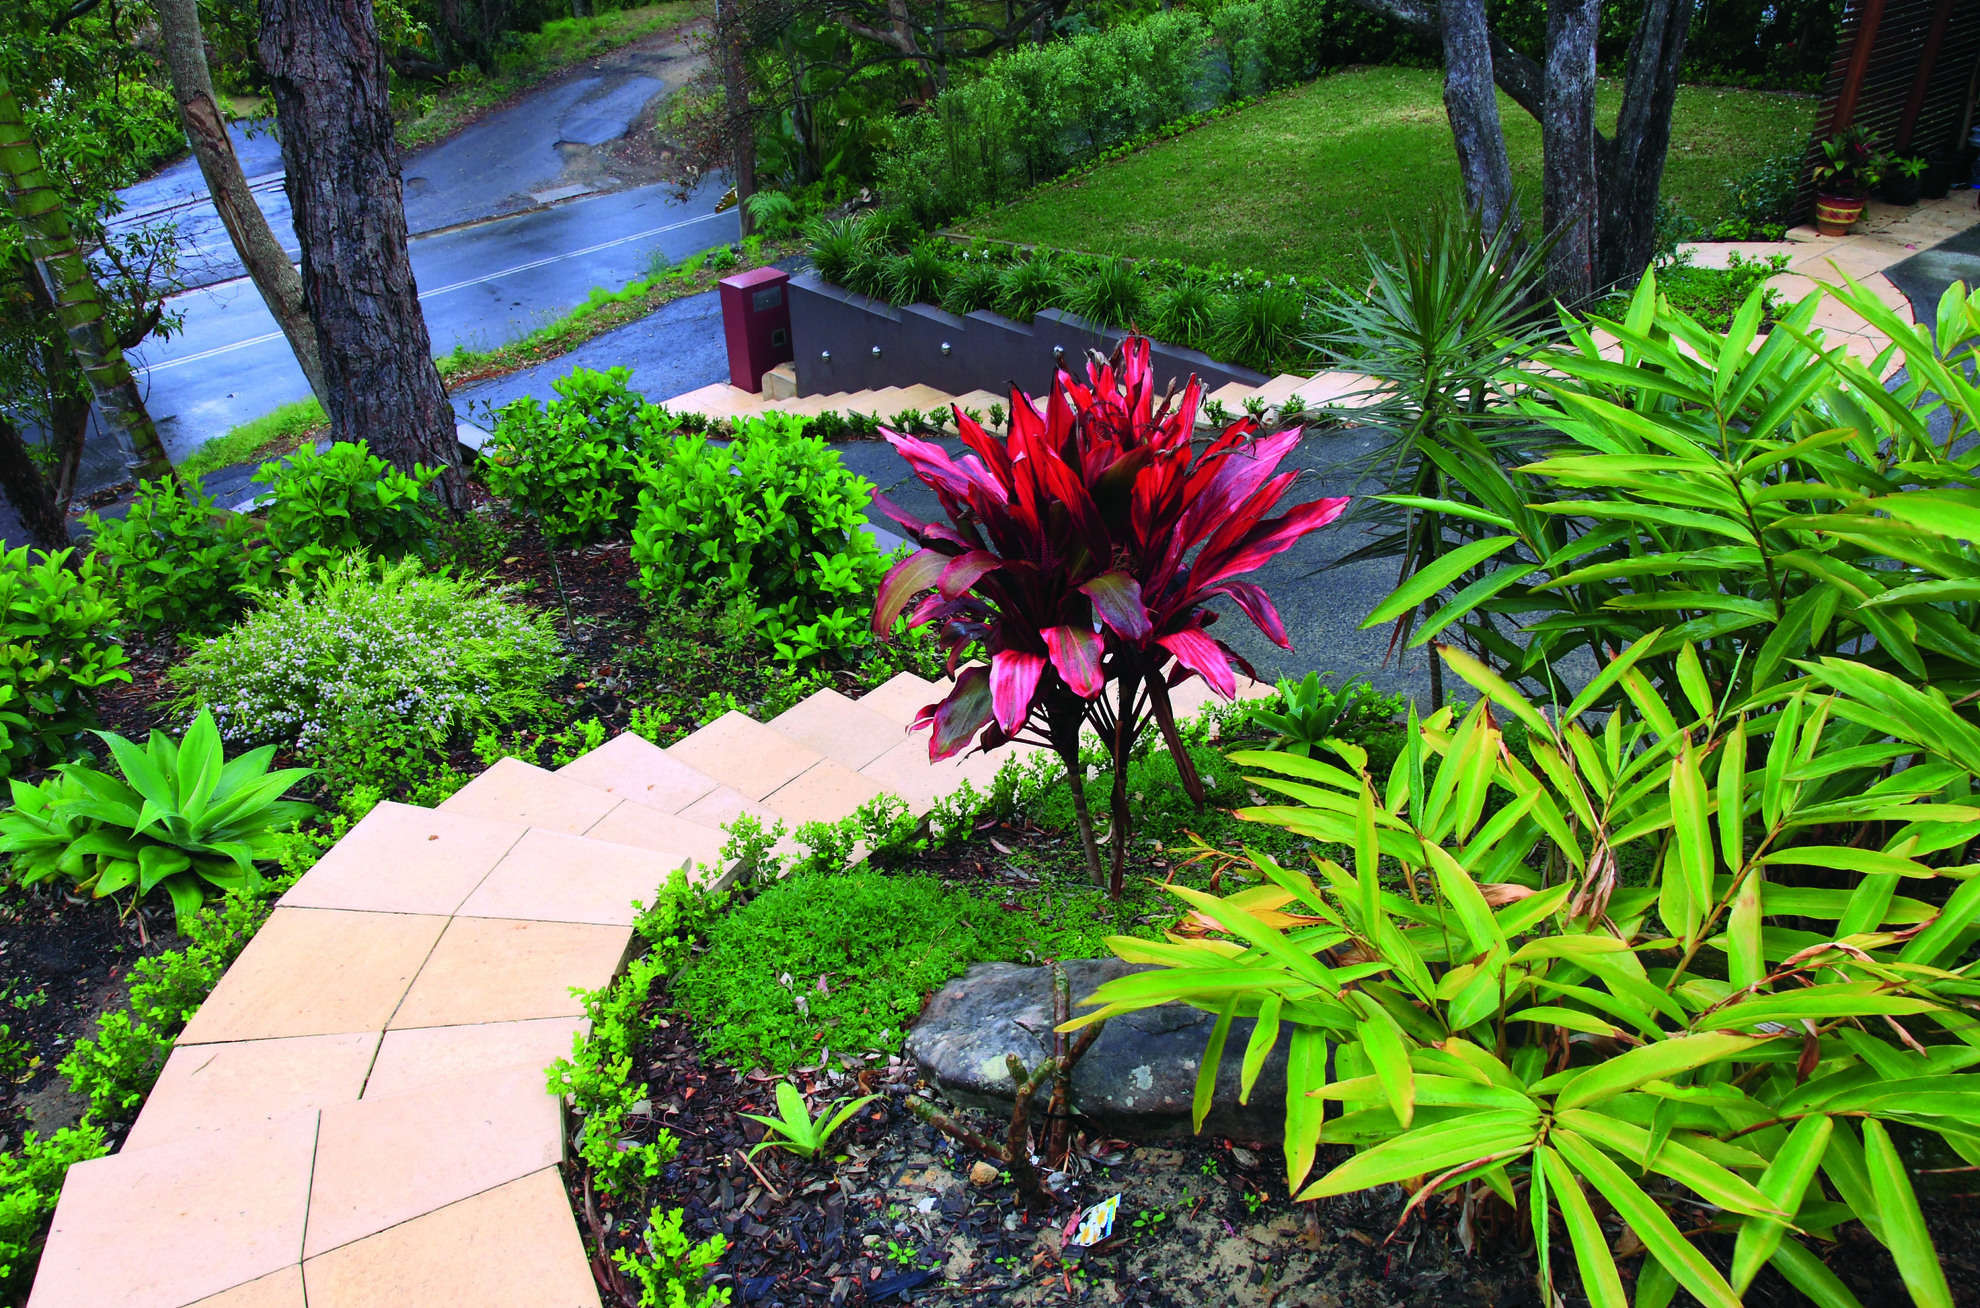 Manna landscapes quality landscape design landscaping and gardening landscaping services sydney northern beaches workwithnaturefo